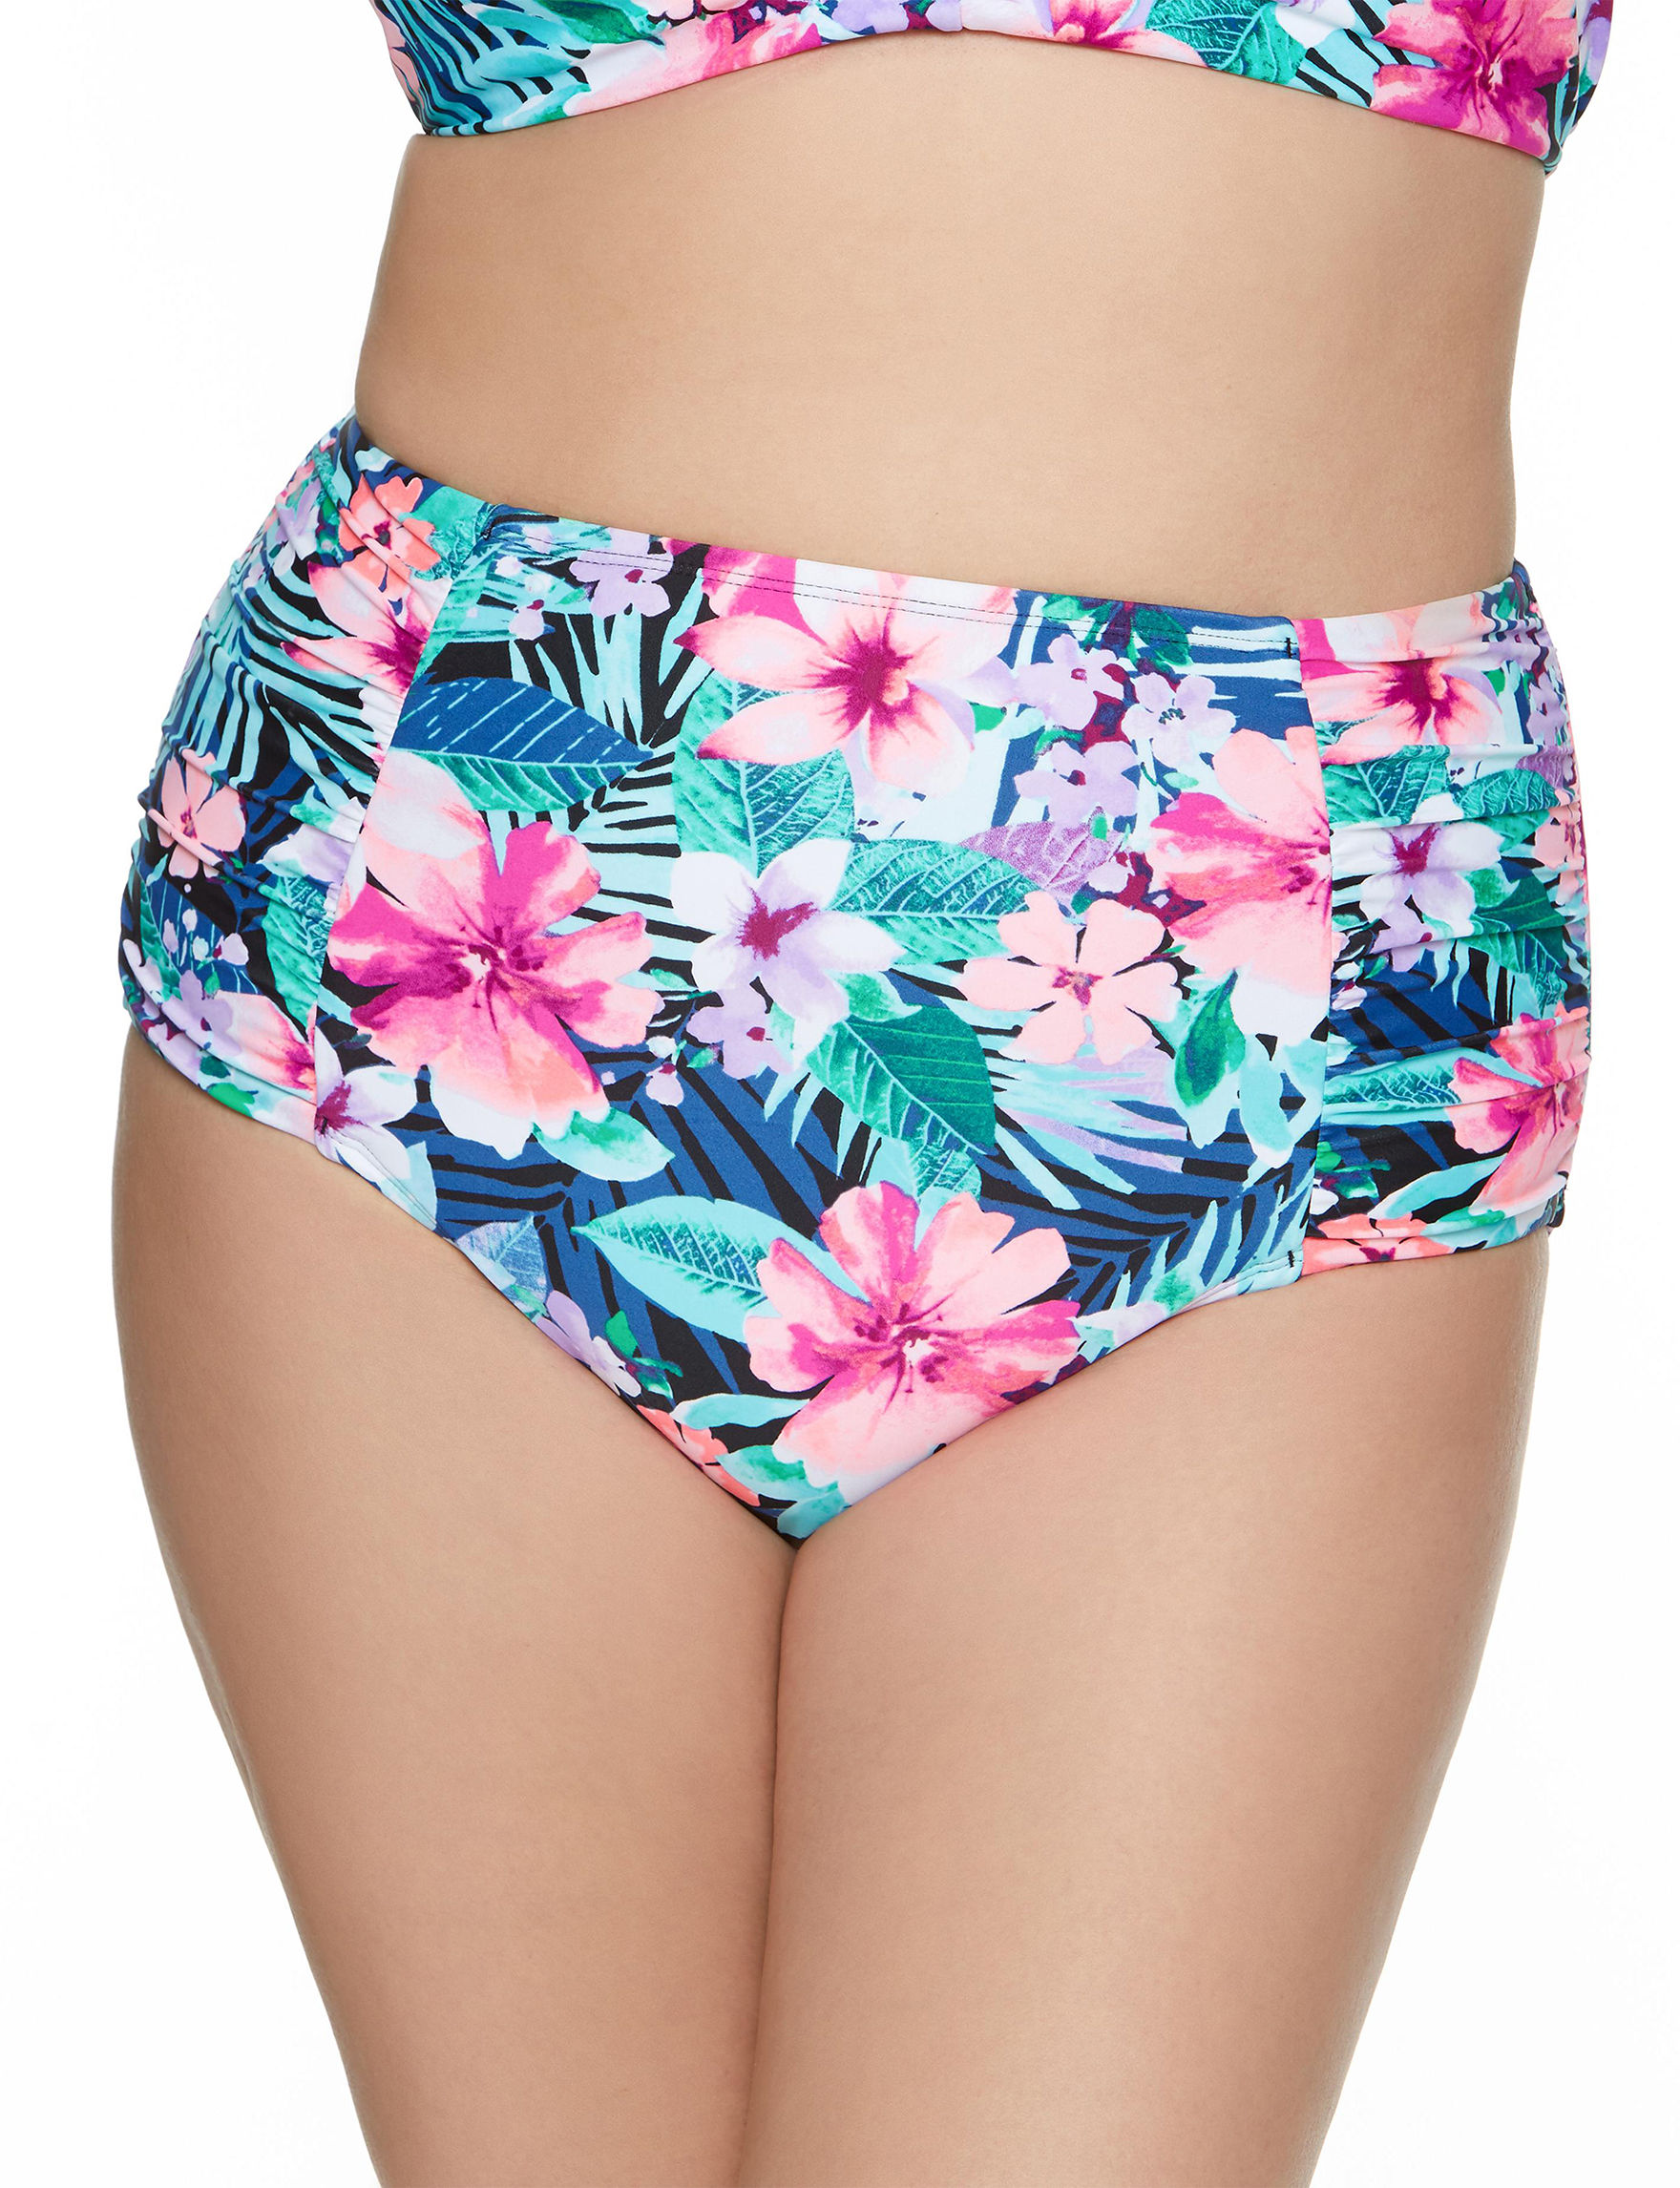 Beach Diva Floral Swimsuit Bottoms High Waist